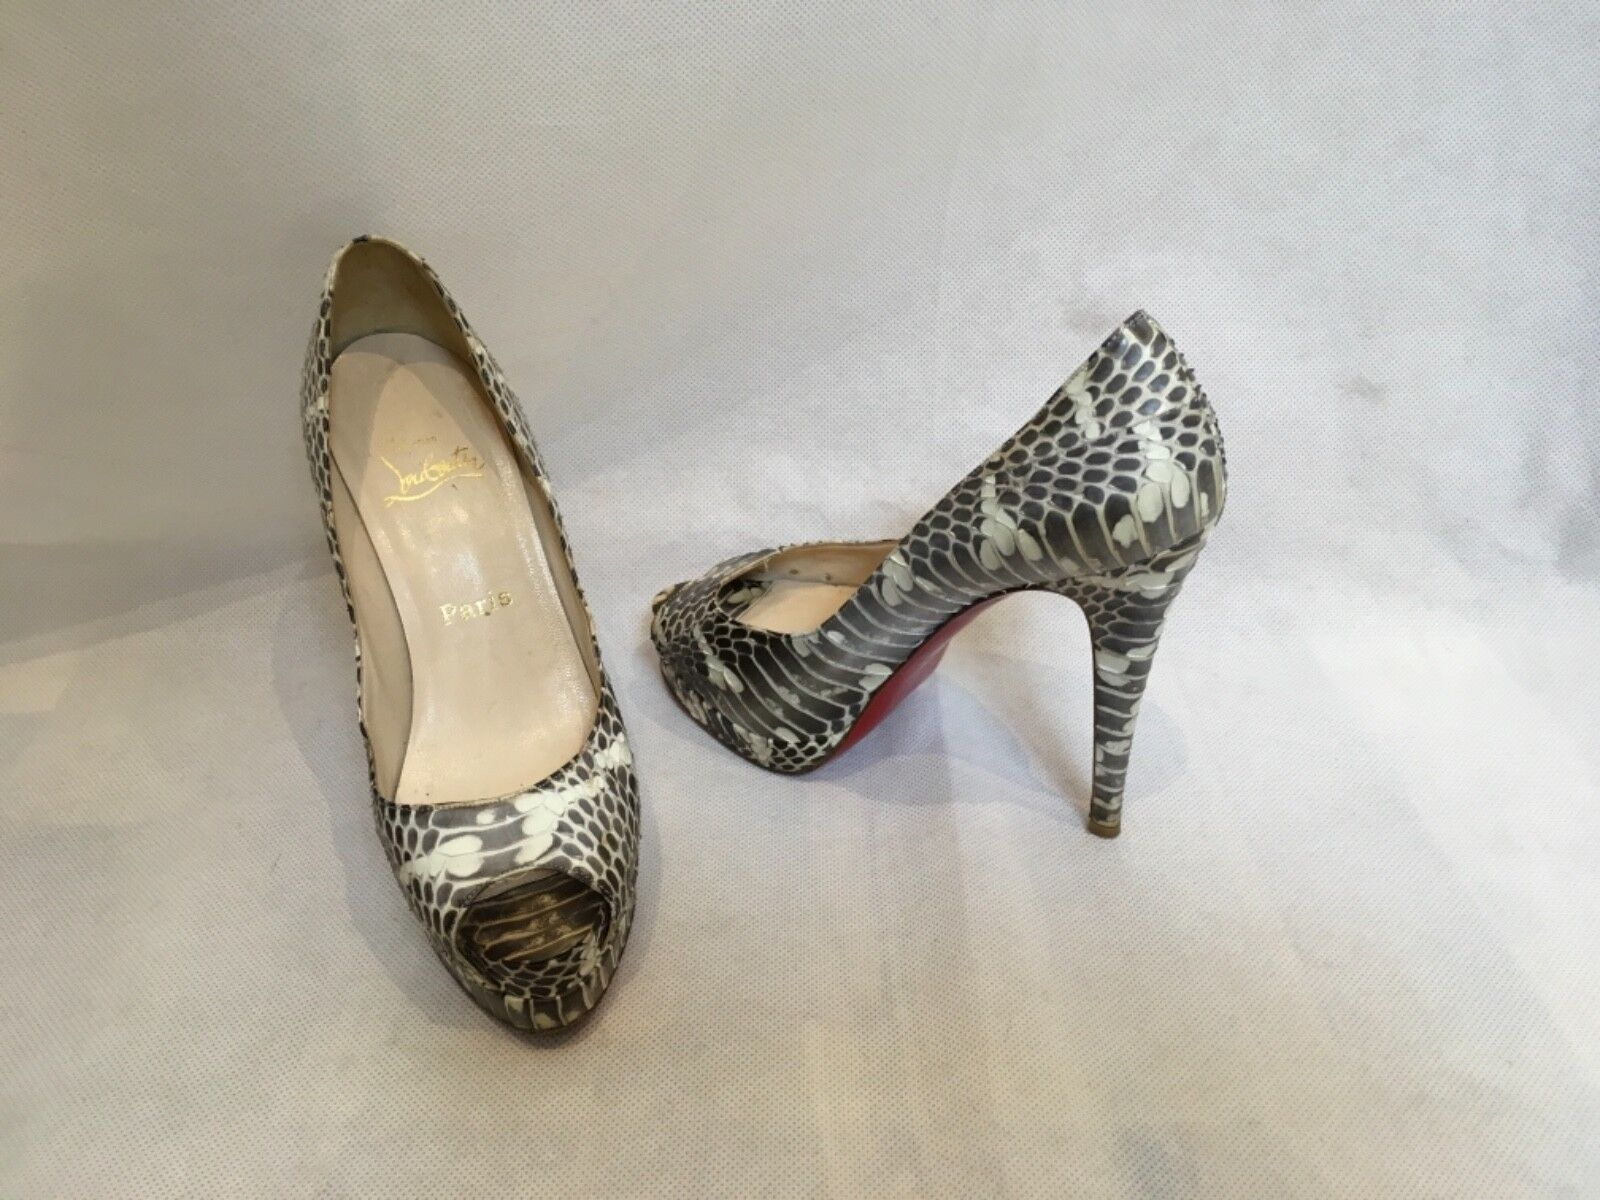 Christian Louboutin Python Bout Ouvert Plateforme Taille Escarpins Taille Plateforme IT37 UK4 US6 6b84e2